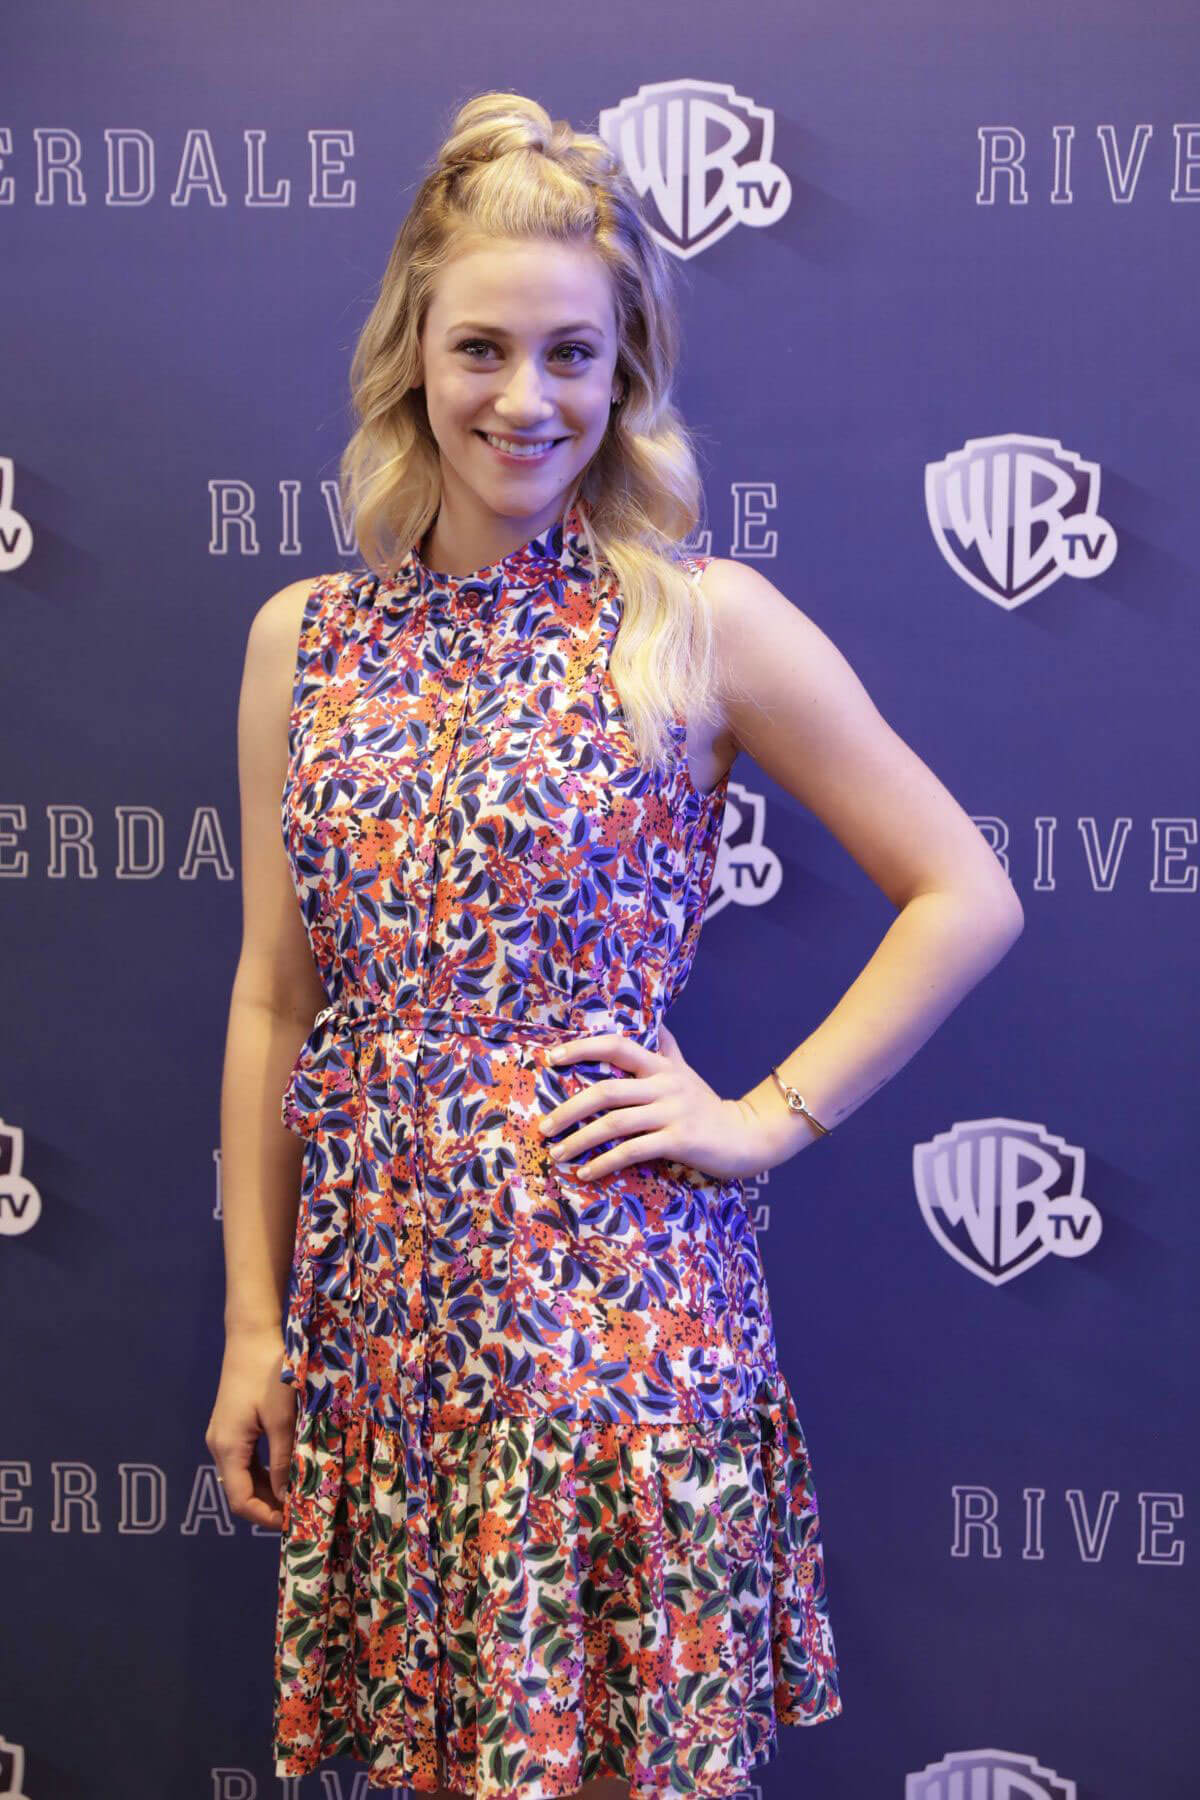 Lili Reinhart Stills at Riverdale' TV Series Photocall in Mexico City